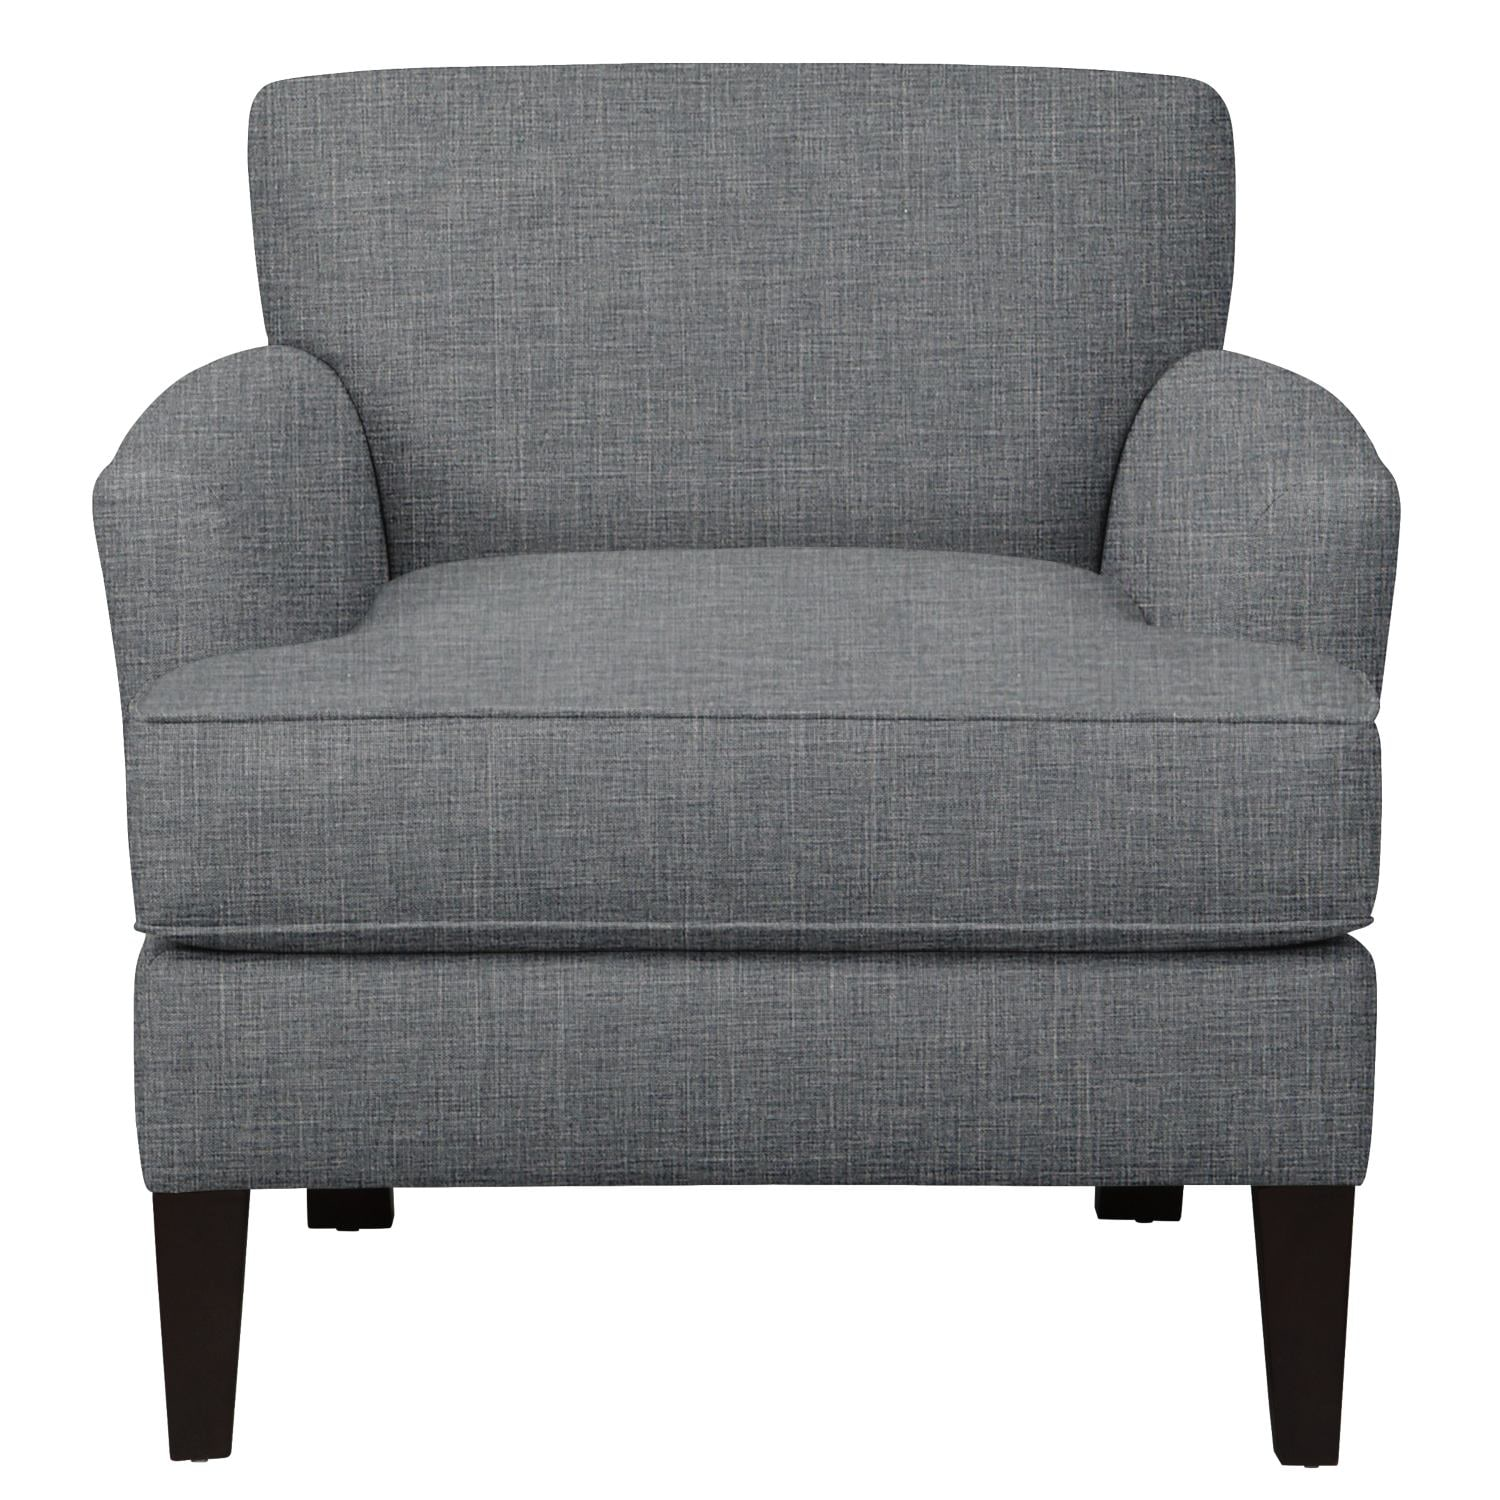 Living Room Furniture - Marcus Chair w/ Milford II Charcoal Fabric